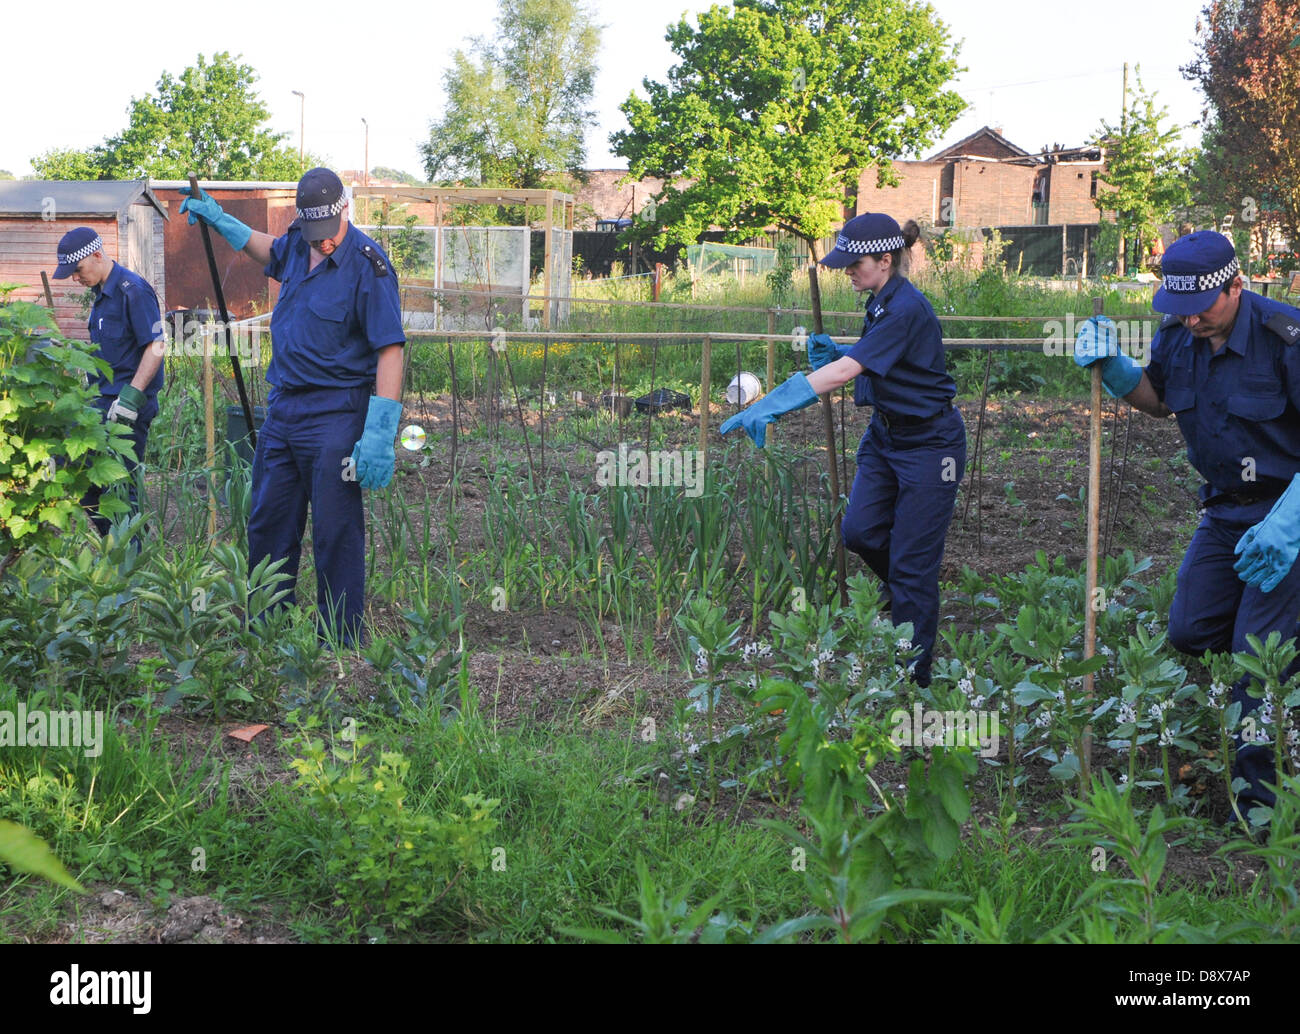 Muswell Hill, London, UK. 5th June 2013. Police officers conduct a search of allottments with the attacked community - Stock Image